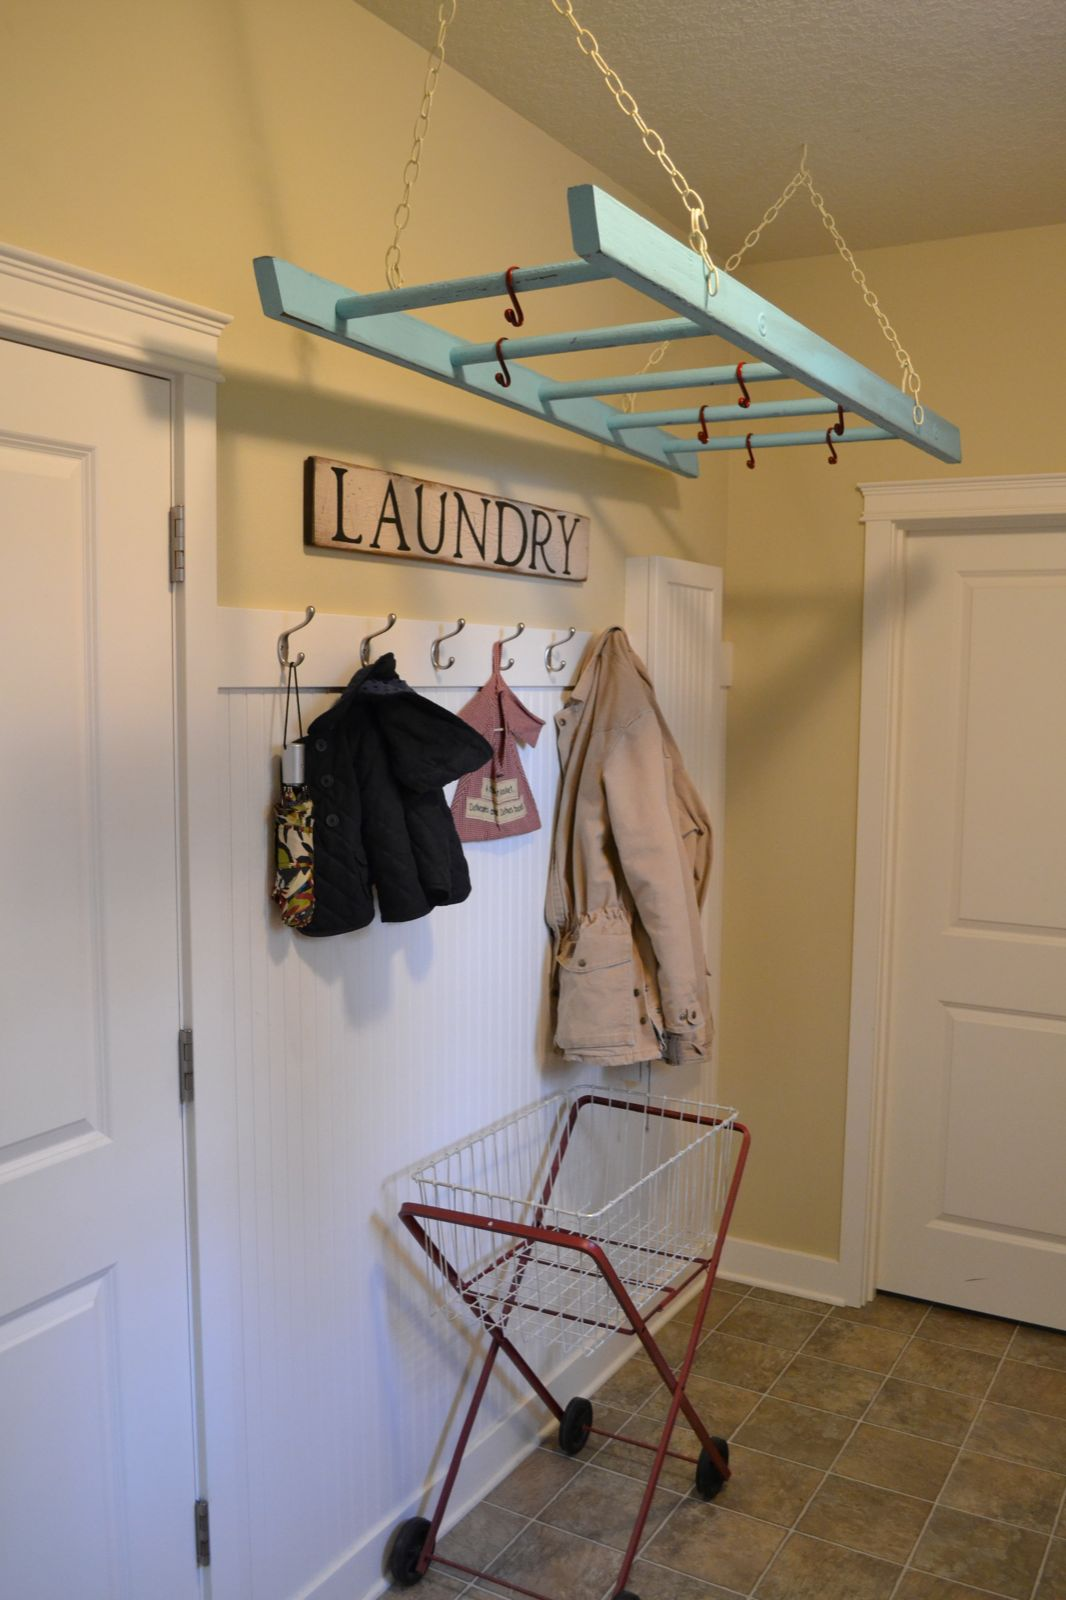 Hanging ladder adds storage in the laundry room